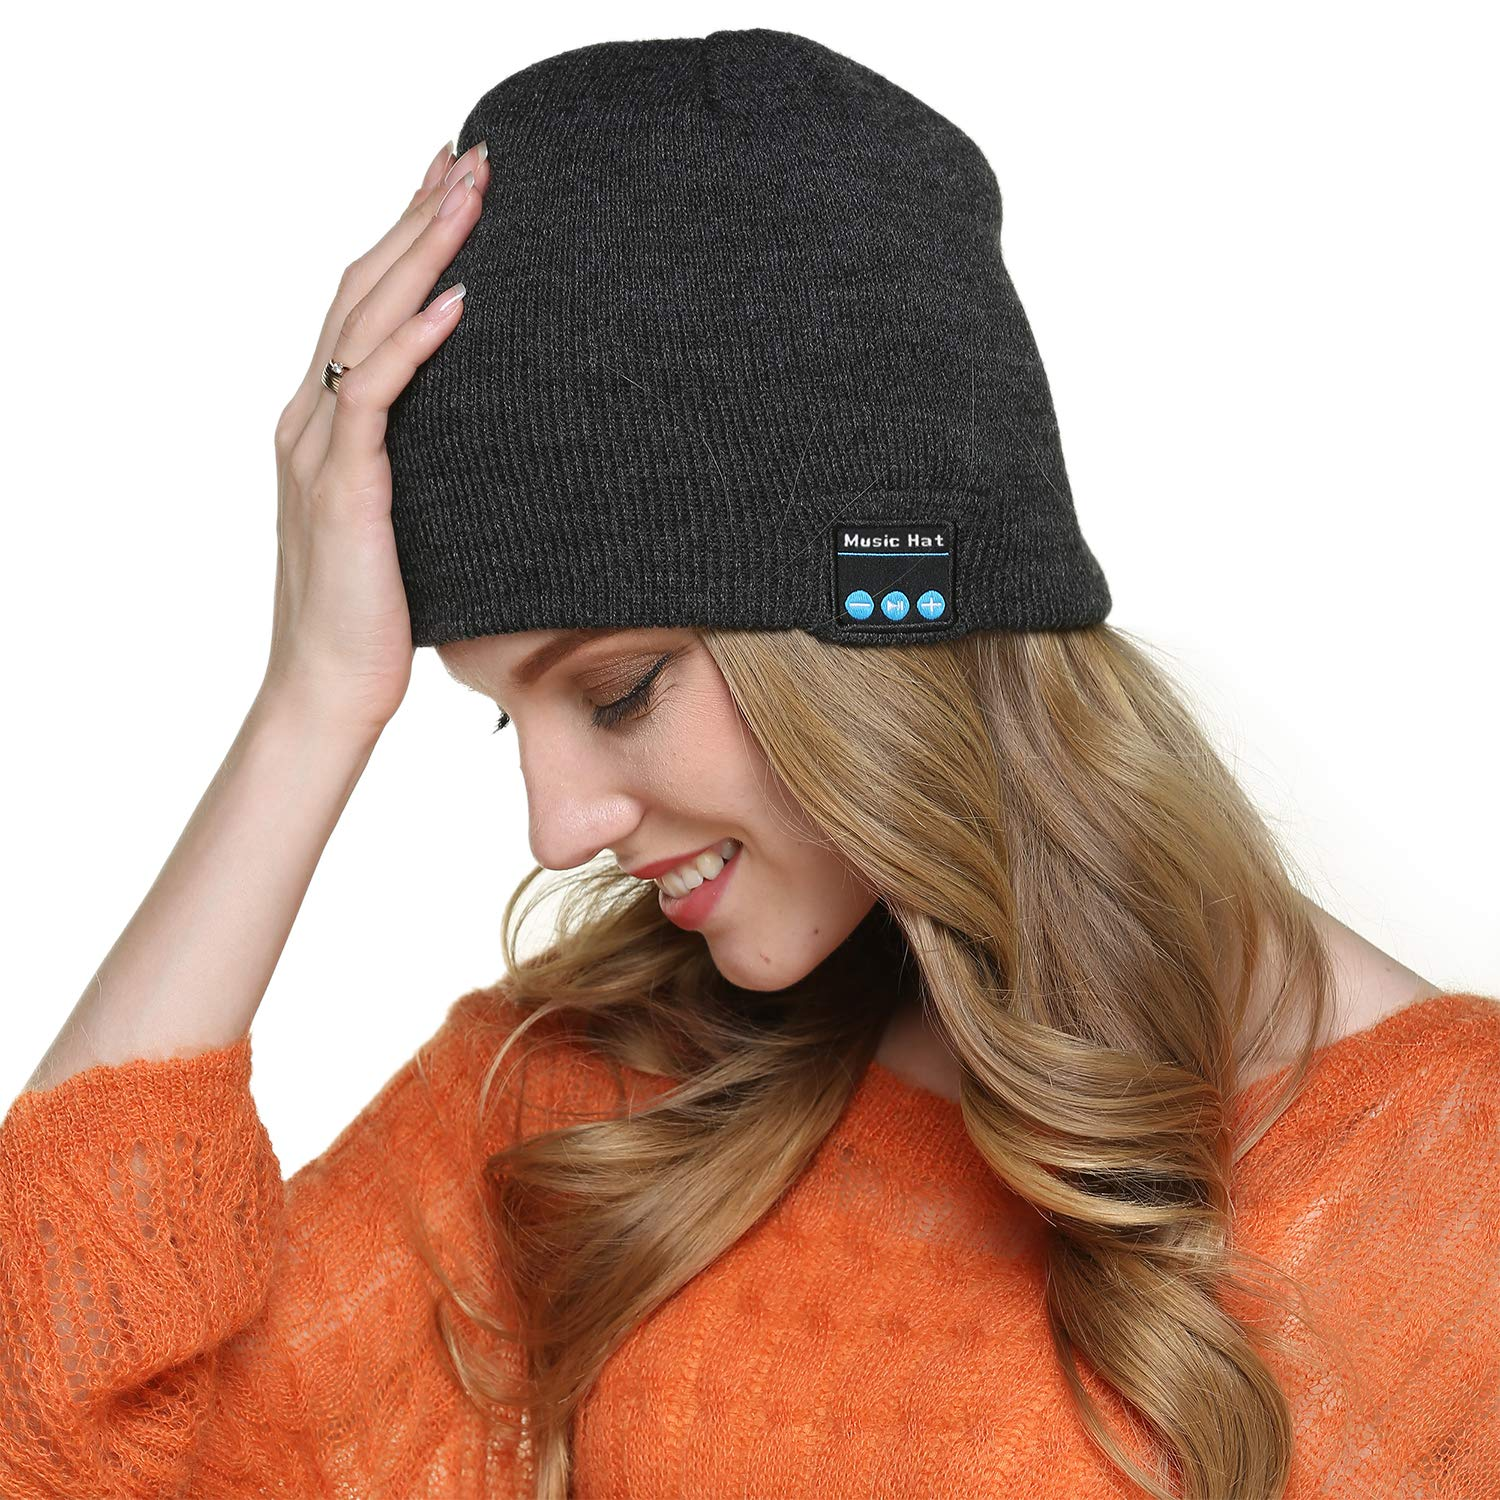 YAMTHR HD Stereo Bluetooth Beanie Hat Wireless Headset Musical Knit Cap V4.2 Headphones Speakers Built-in Mic (Grey)